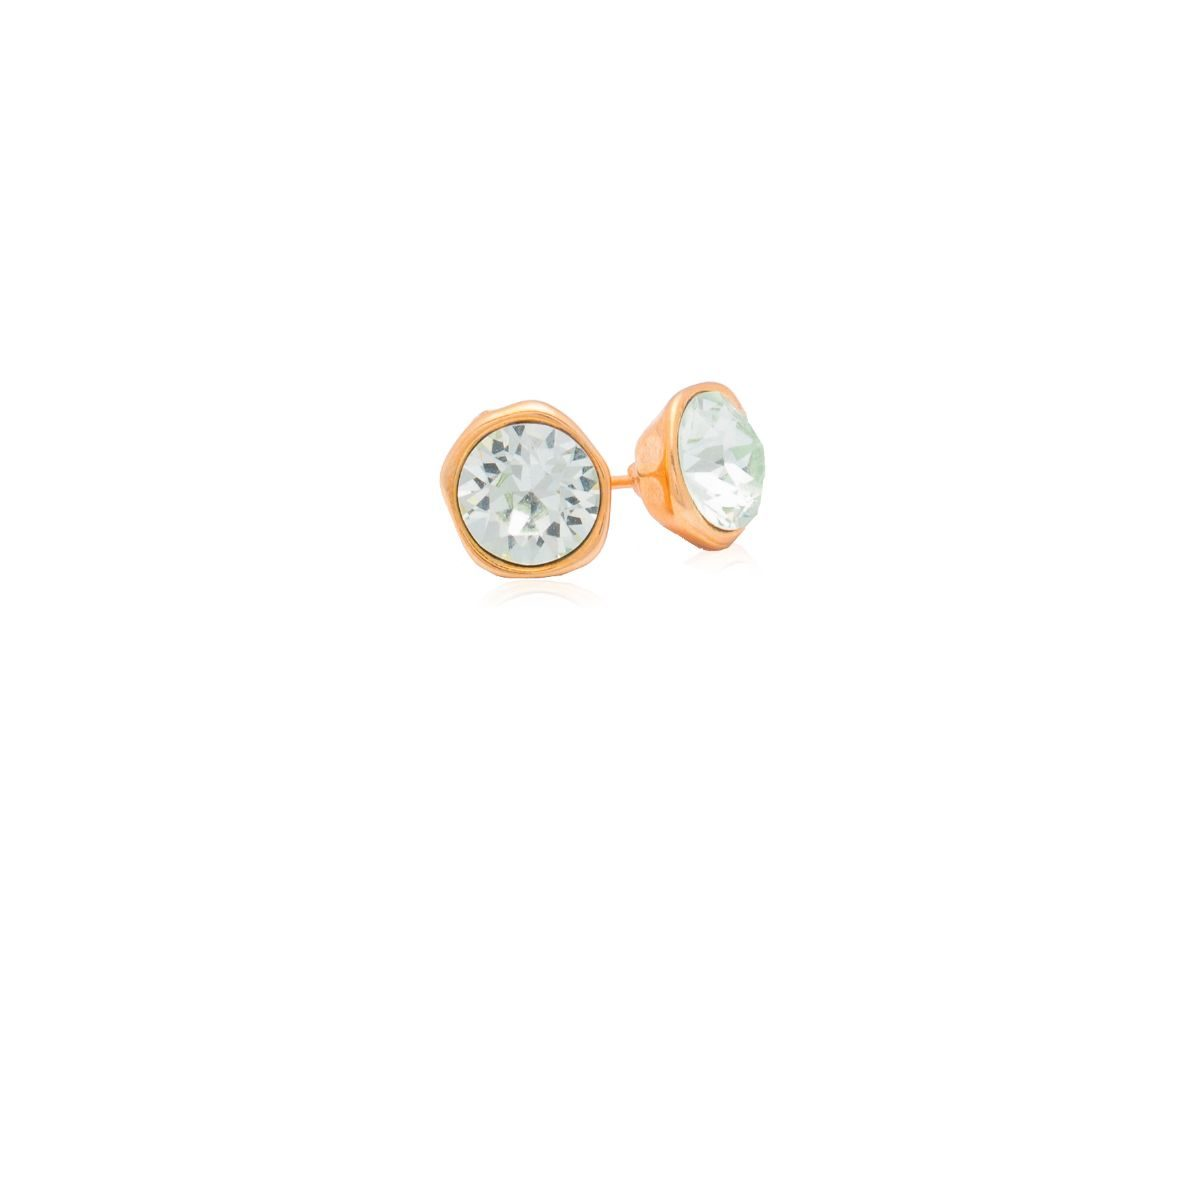 Isabella stud earring with different colored swarovski crystal